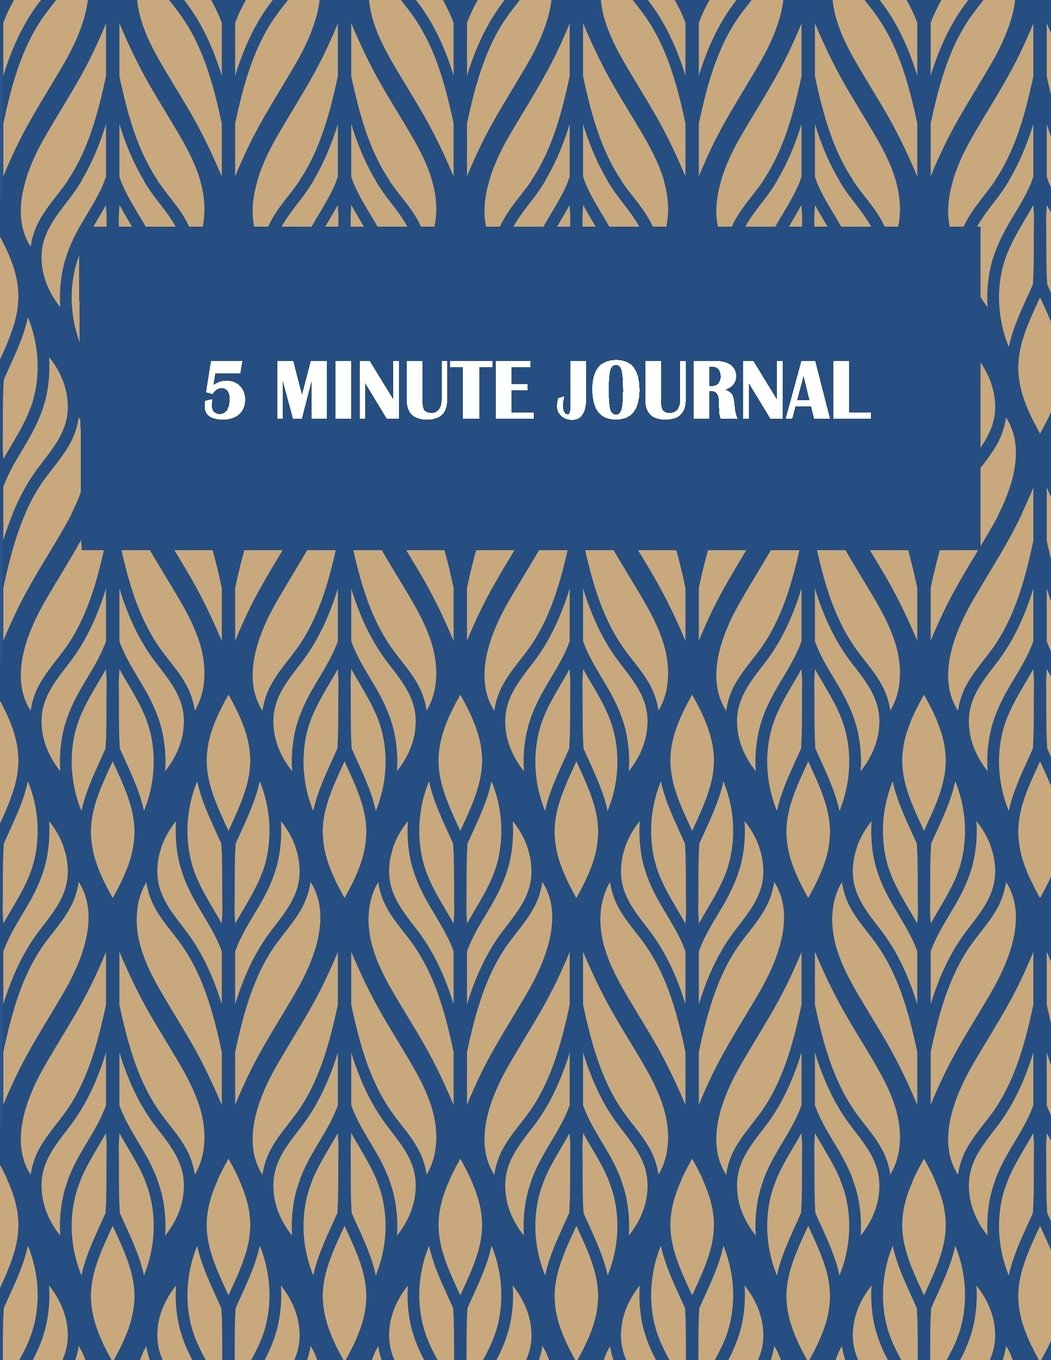 """Download 5 Minute Journal: Daily Mindfulness Planner For Manage Anxiety,Worry And Stress Large Print 8.5"""" x 11"""" Daily Practices, Reflections For Living In The Present Moment ebook"""